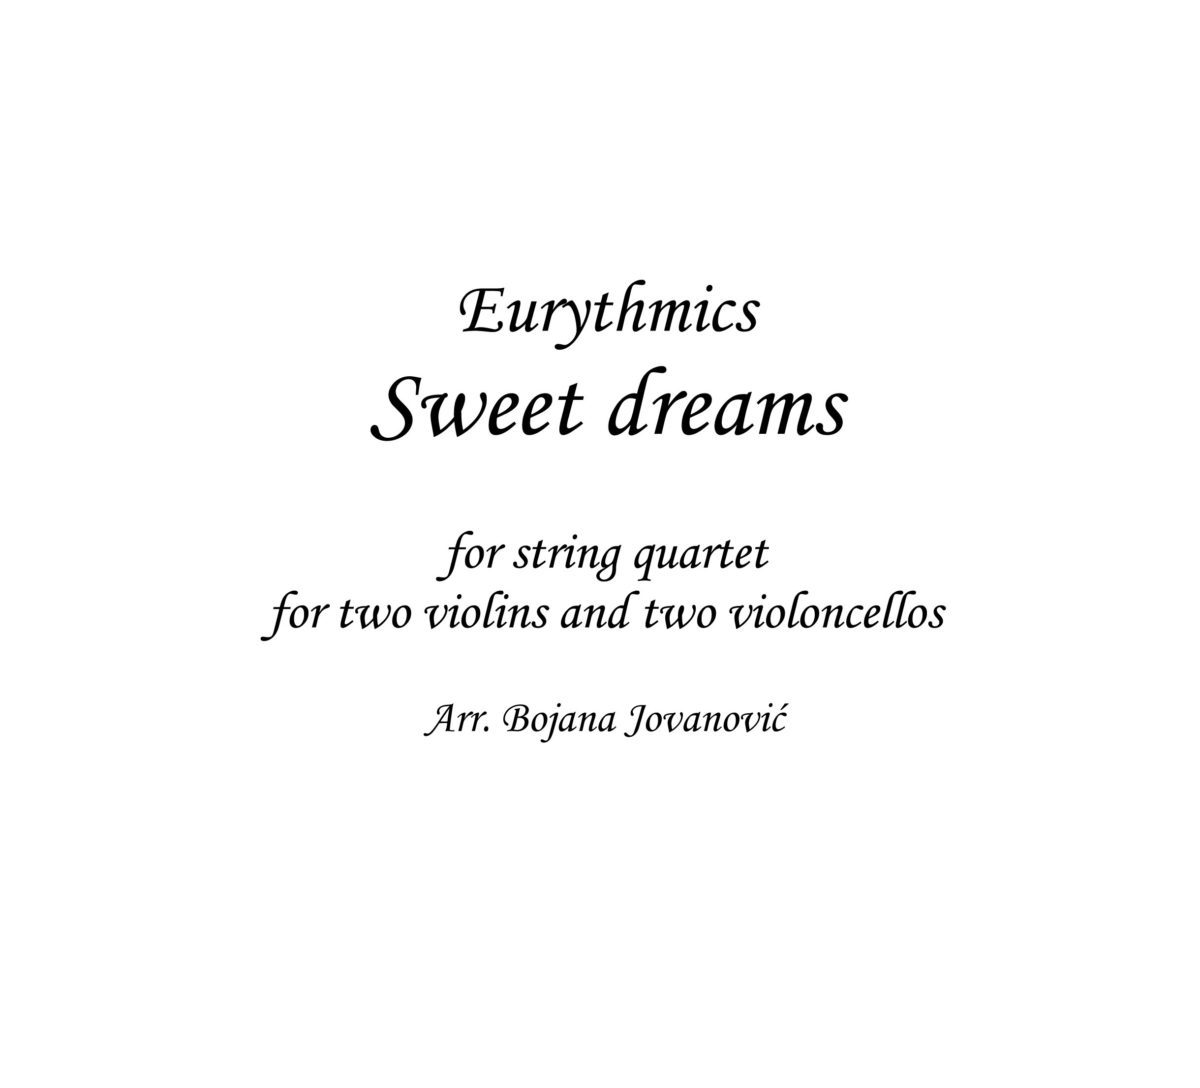 Sweet dreams (Eurythmics) - Sheet Music